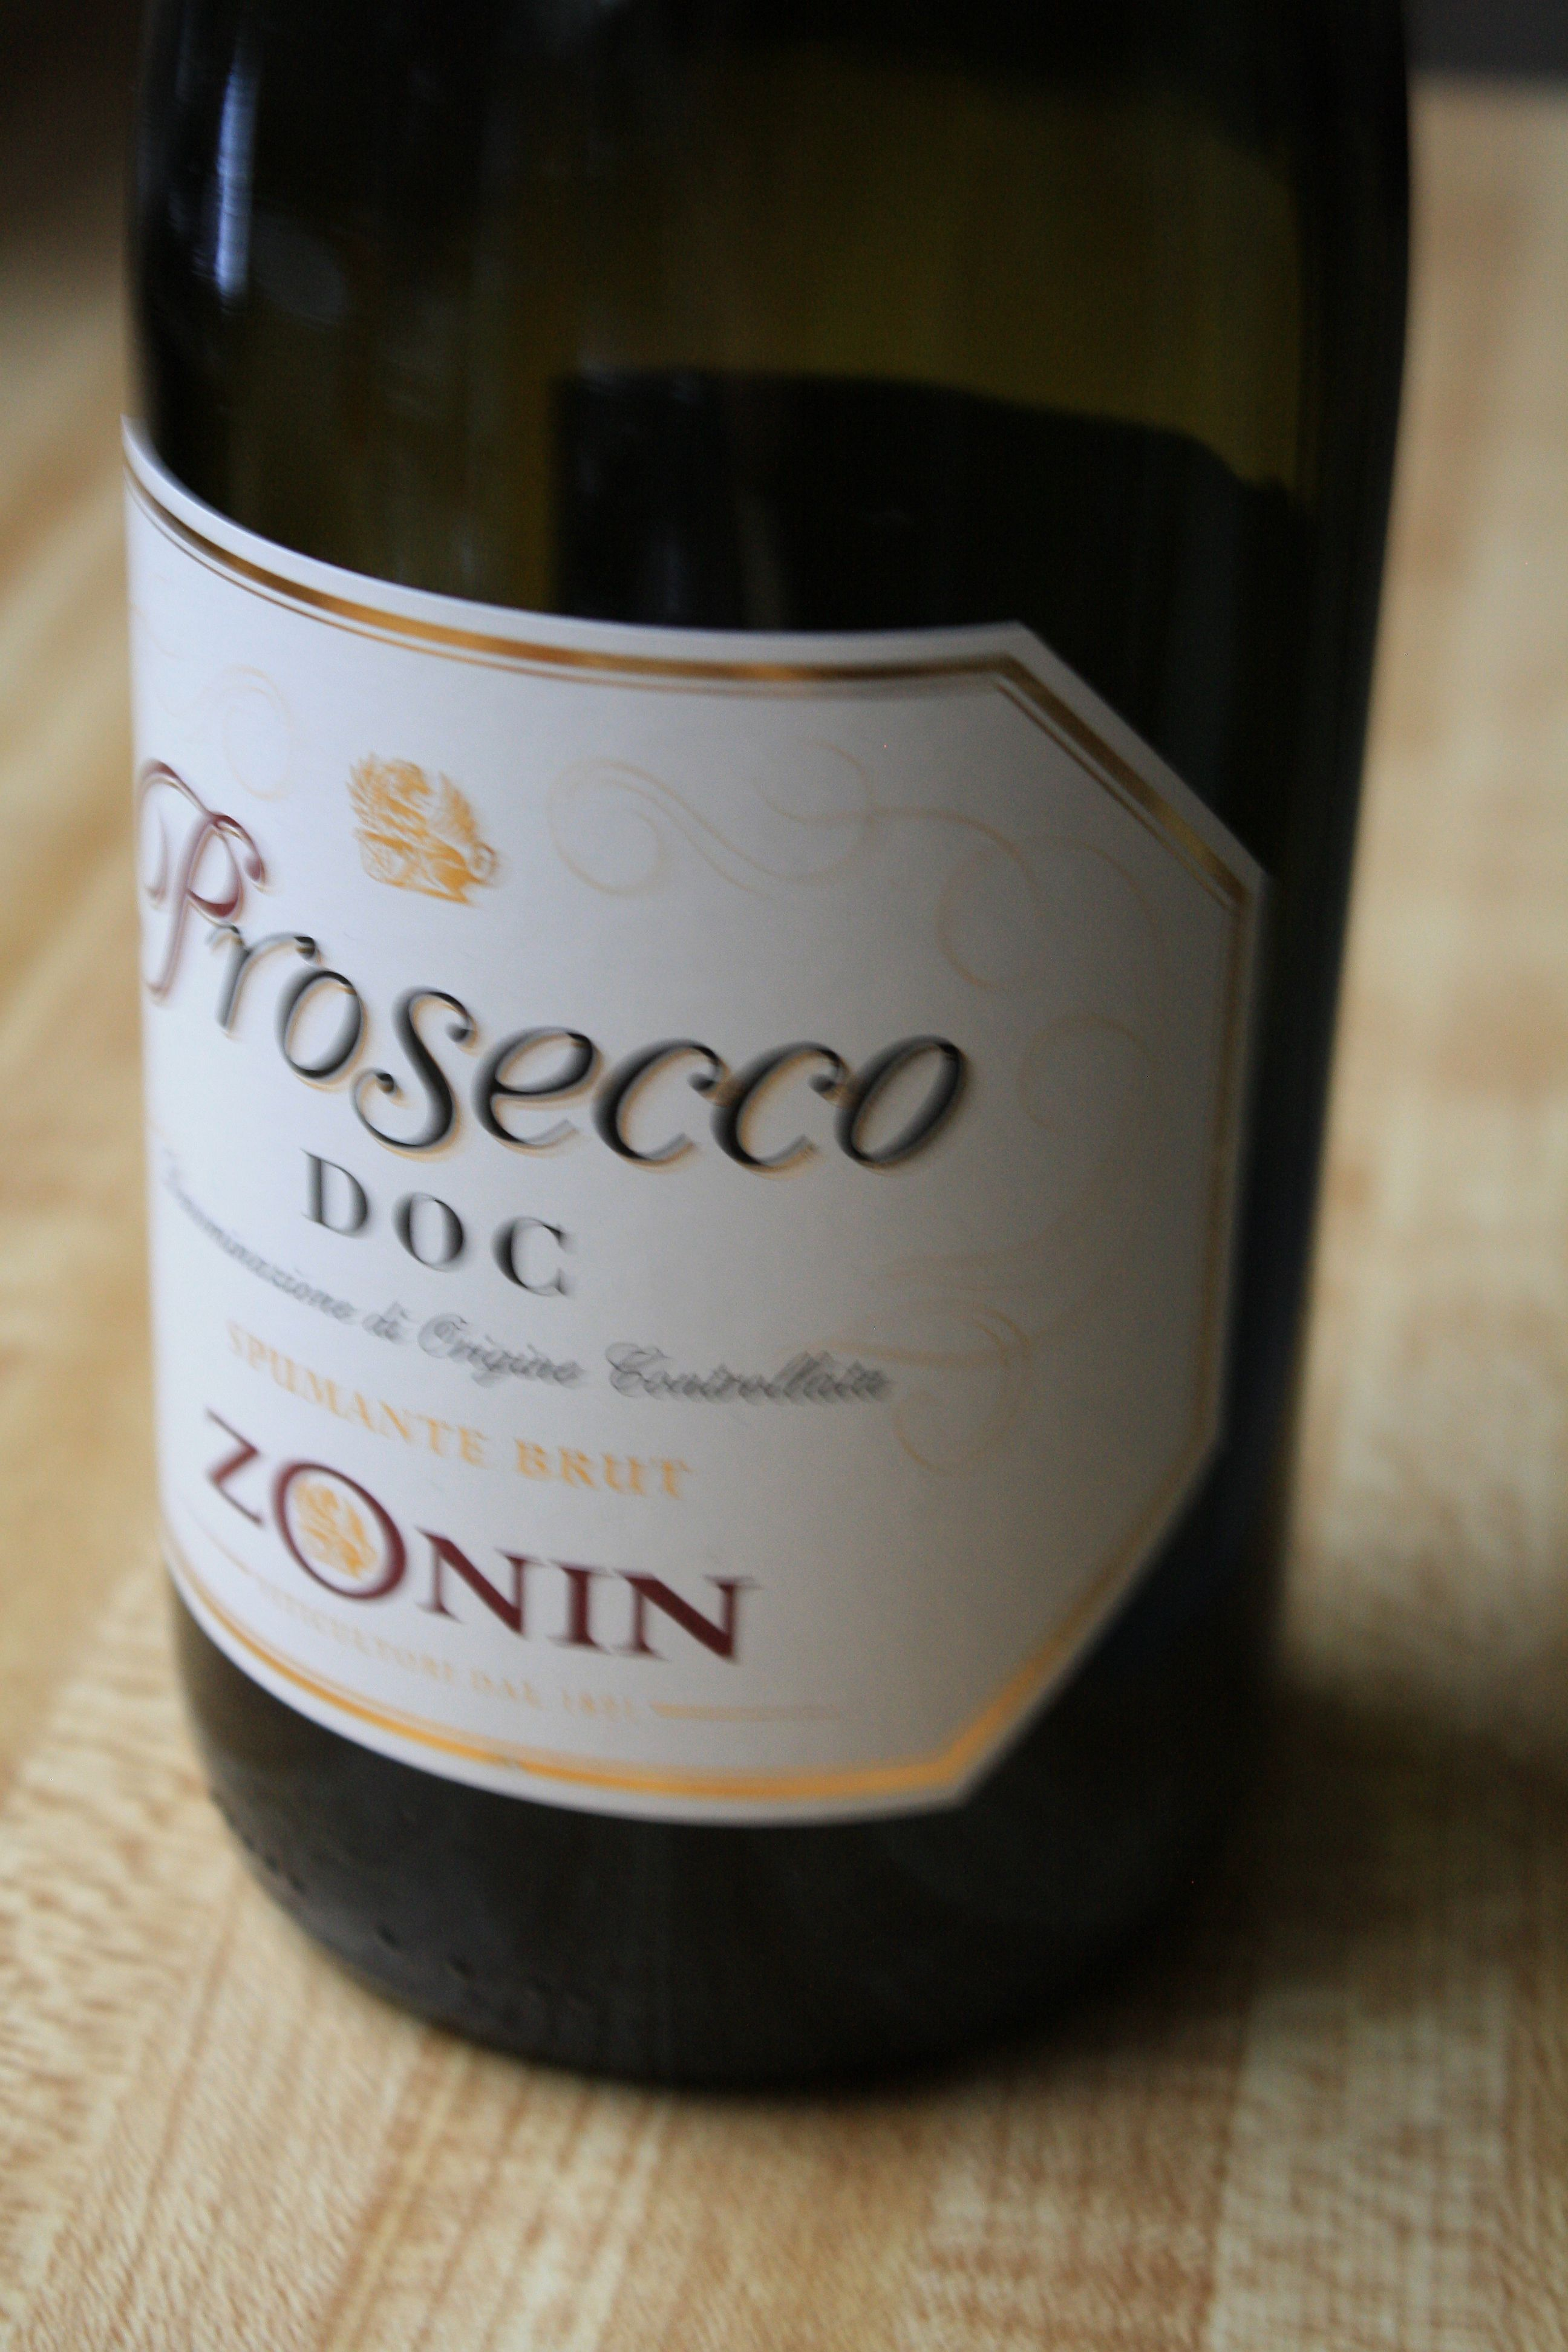 prosecco gives it an extra splash of effervescence